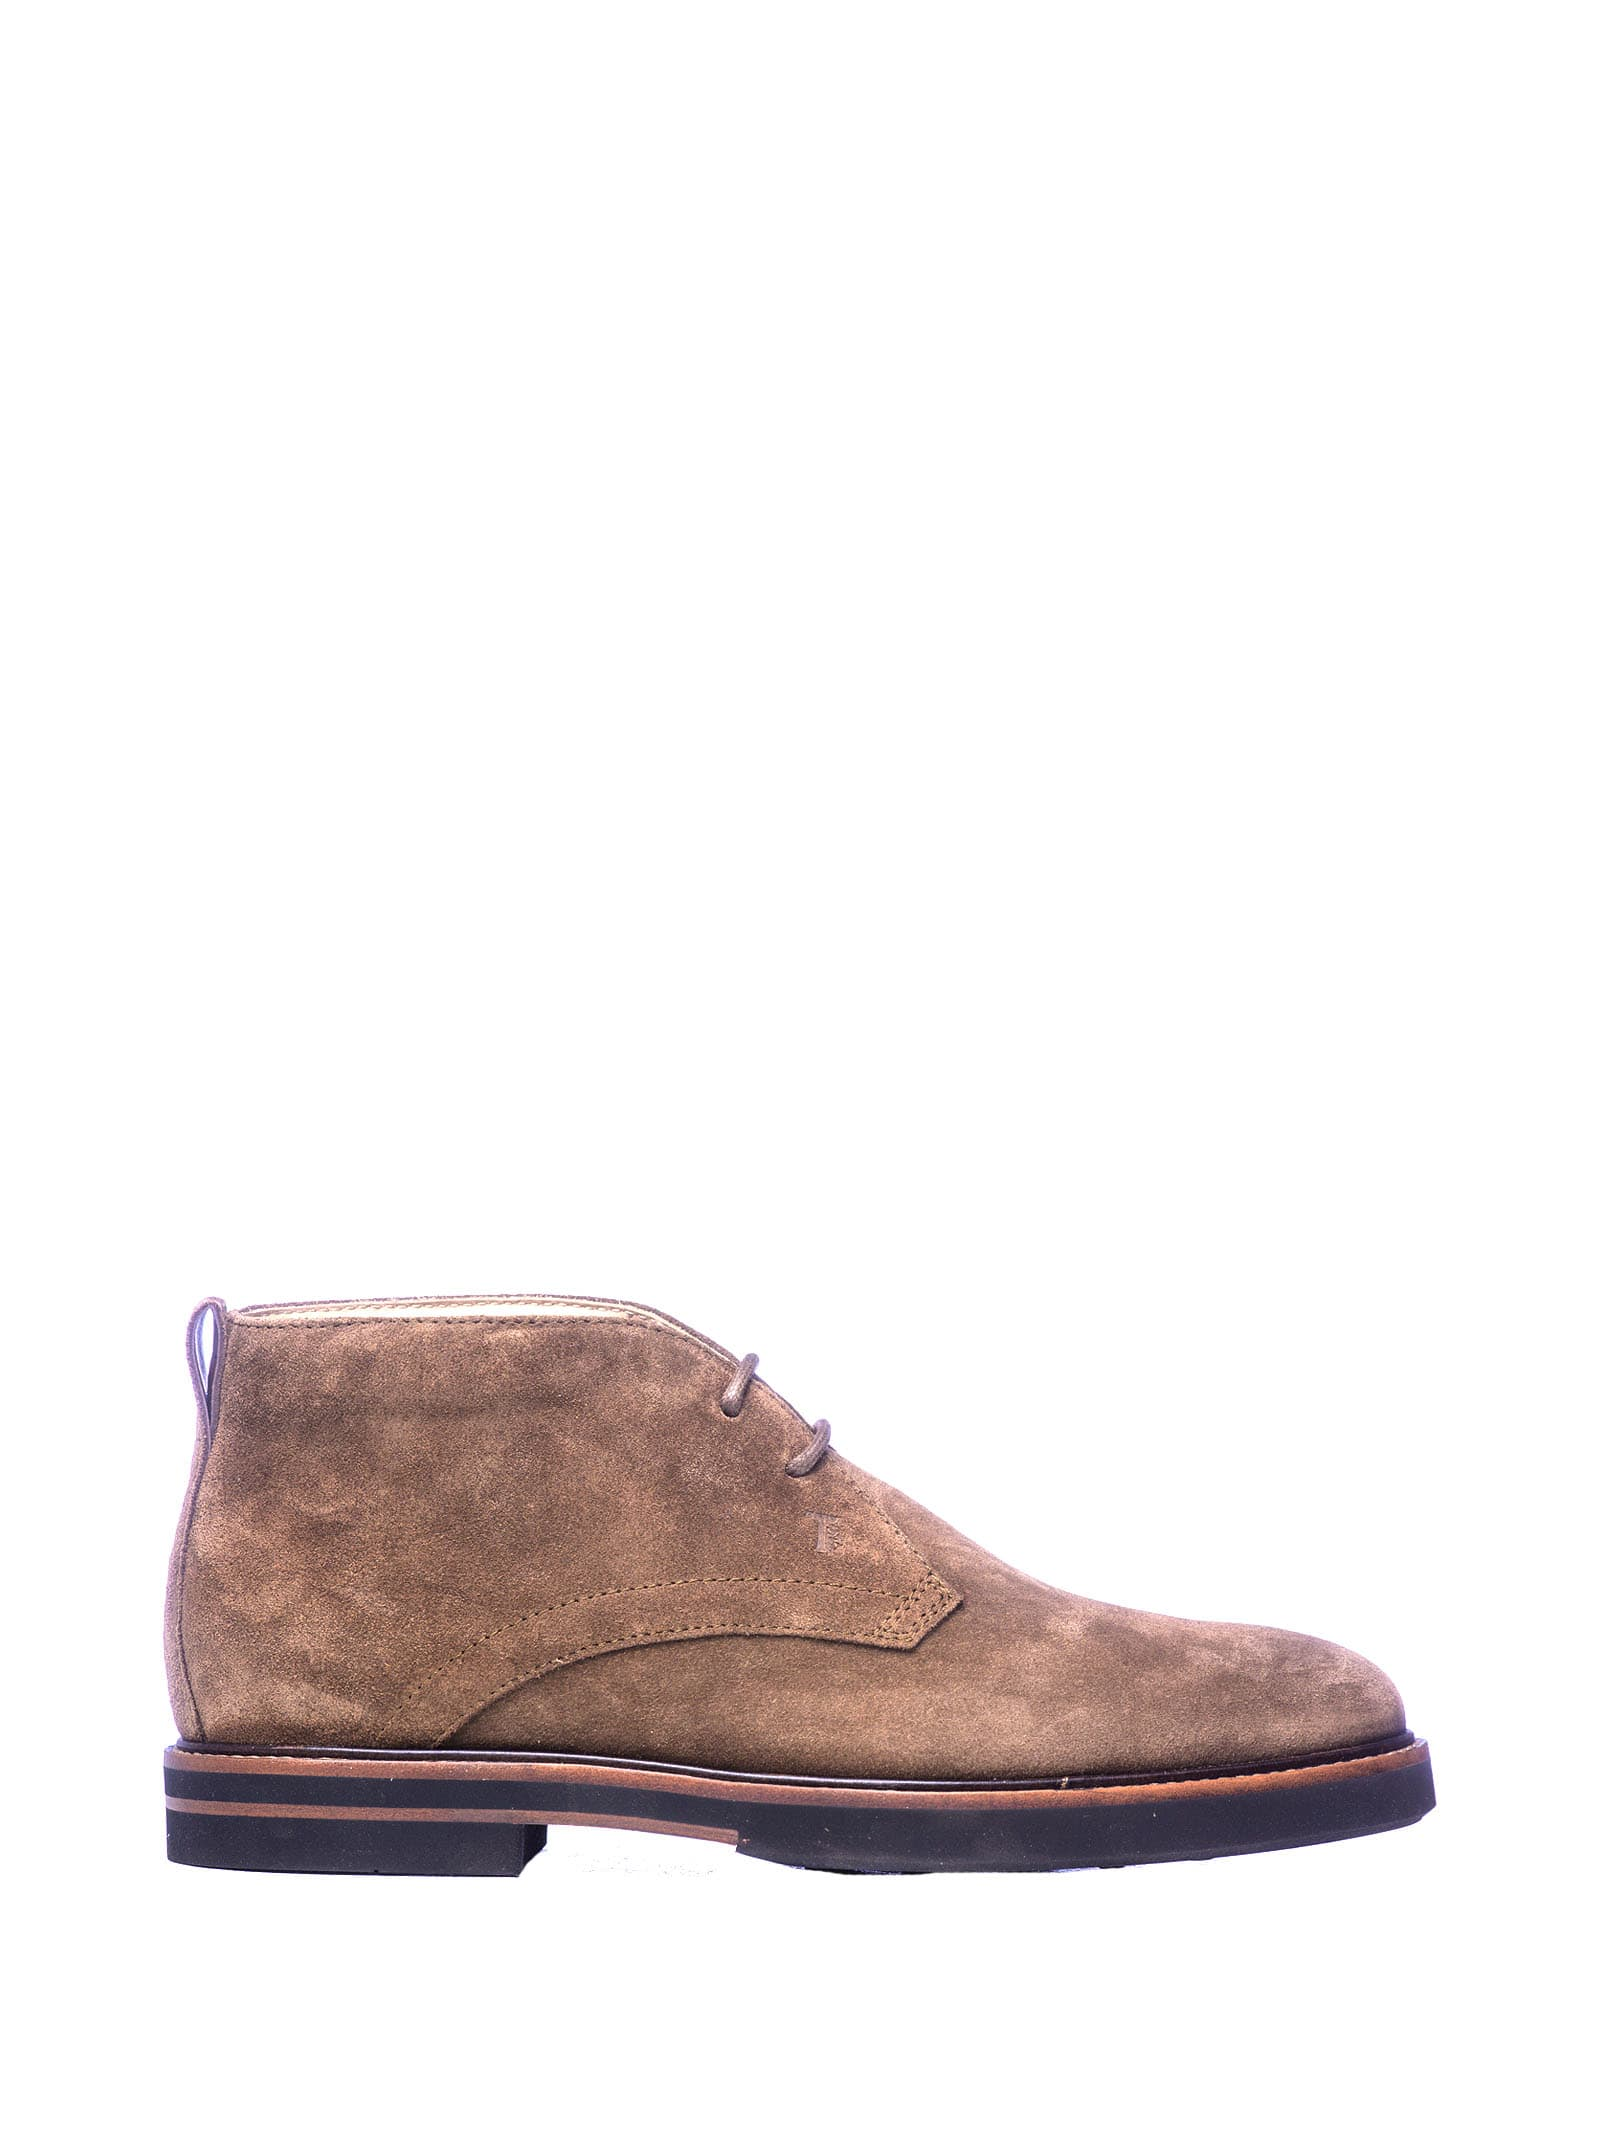 Tods Tods Suede Desert Boots